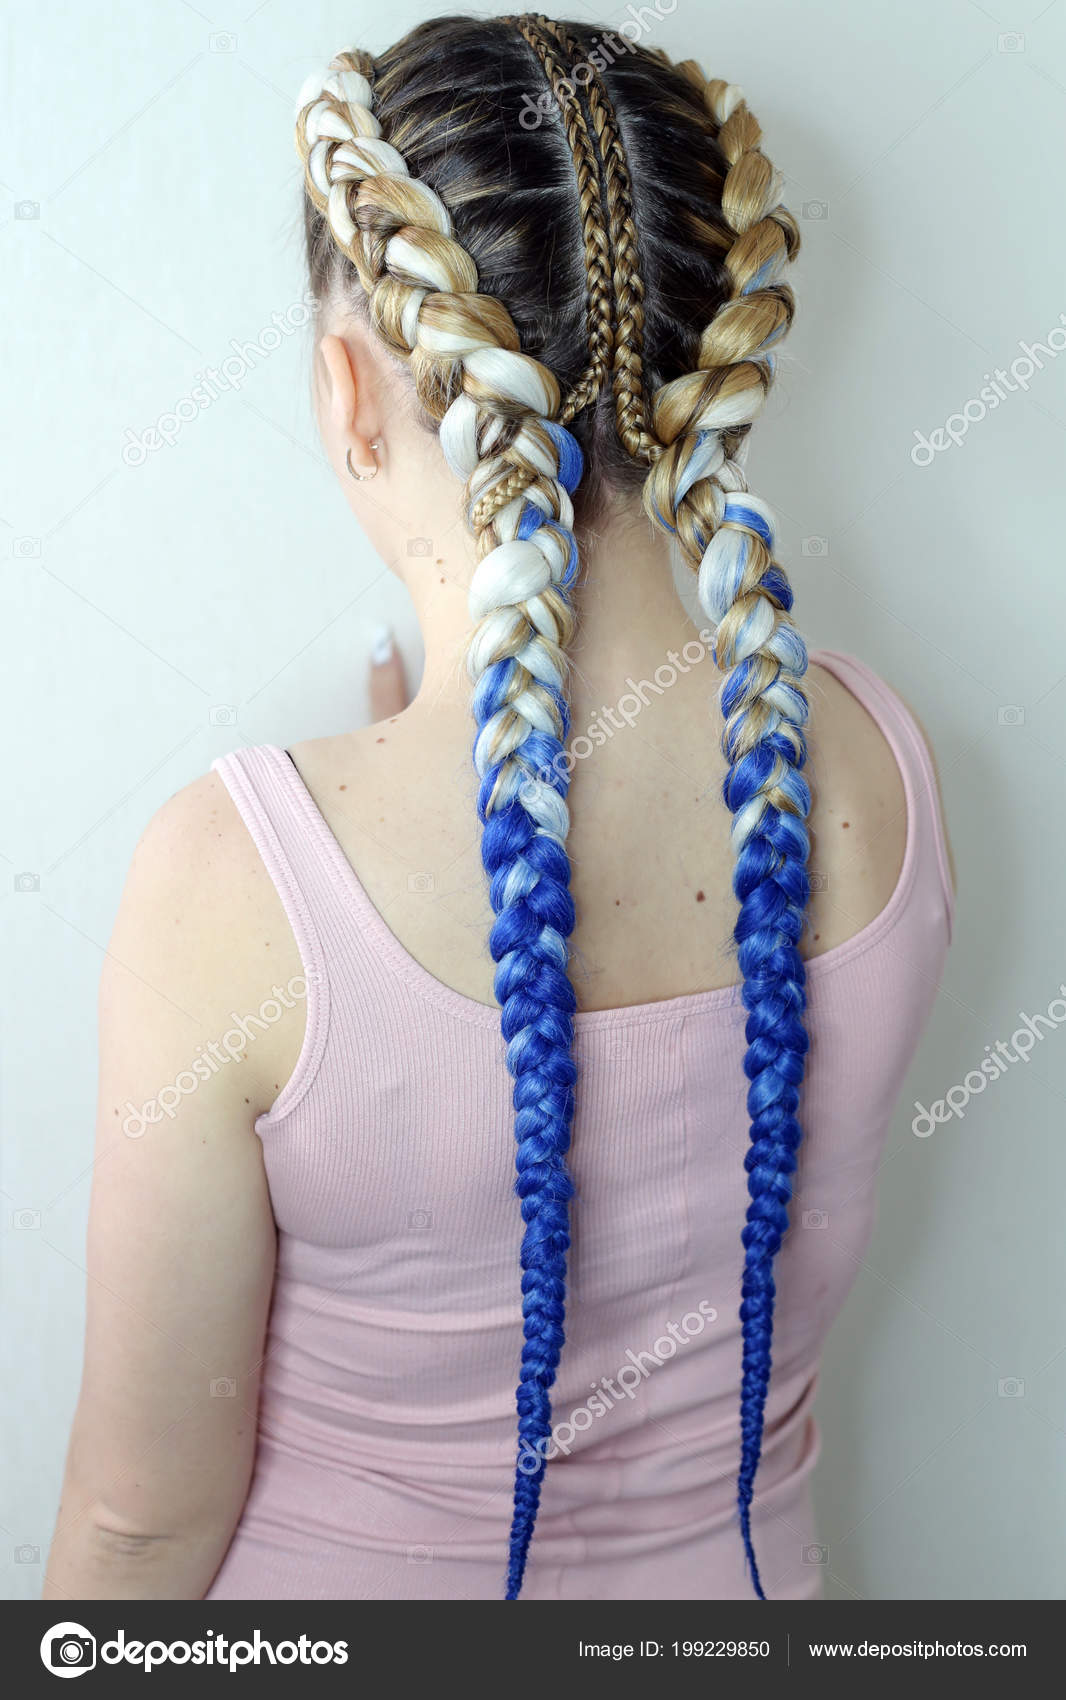 Girl Two Braids Blue White Ambergris Fashionable Youth Stock Photo C Gorgeoussab1 199229850 To prevent damage open up the braids after 6. https depositphotos com 199229850 stock photo girl two braids blue white html